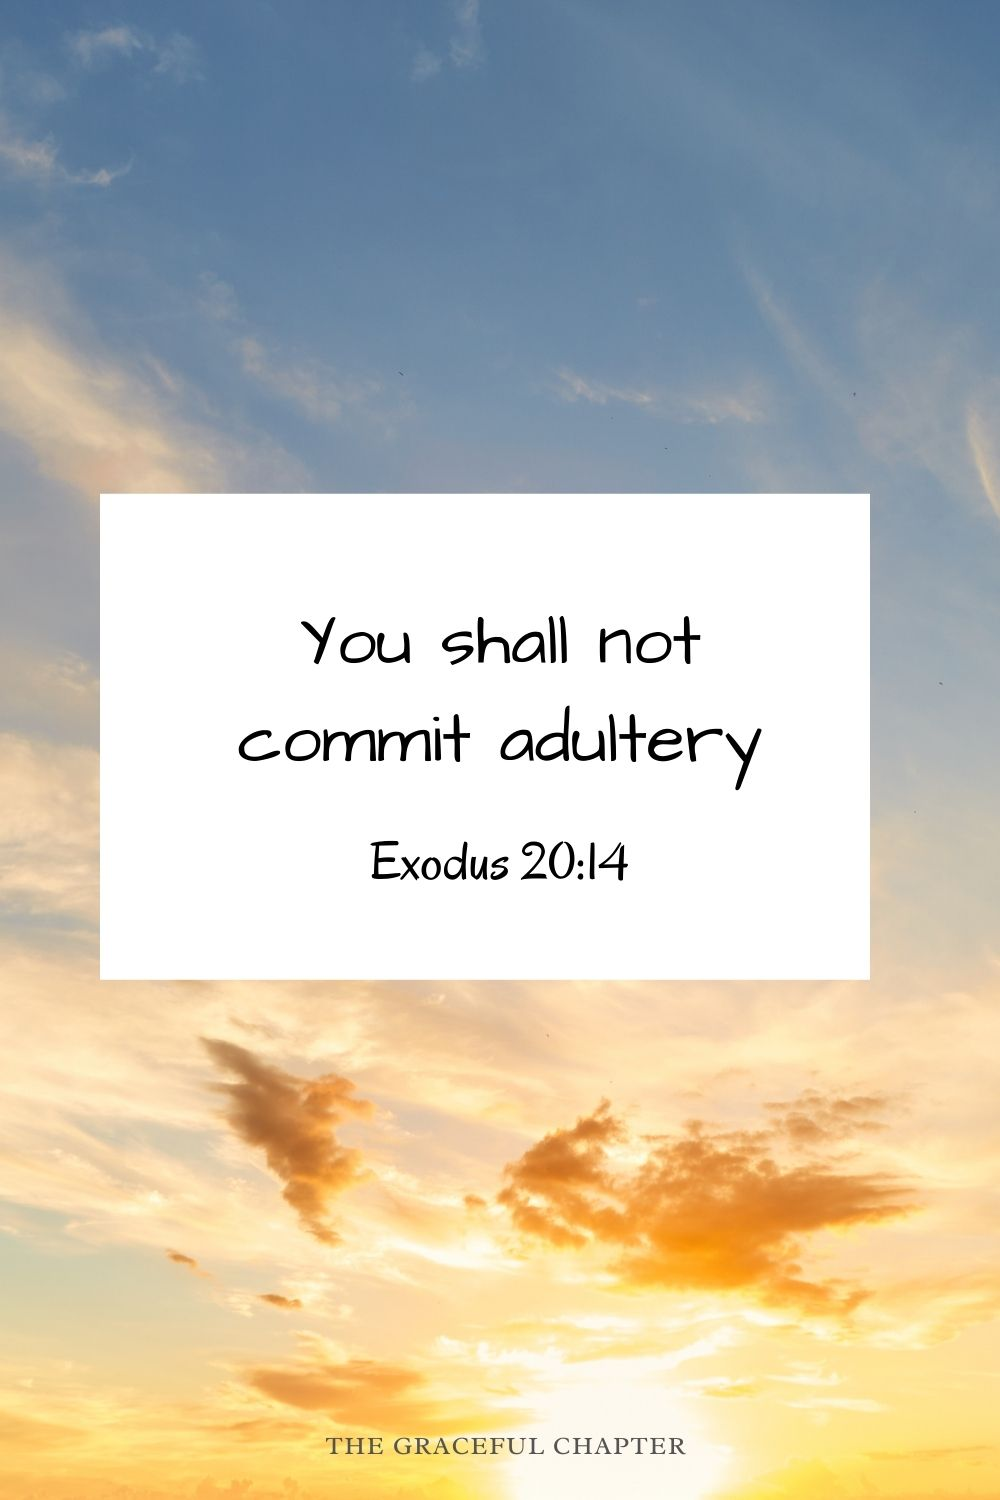 You shall not commit adultery. Exodus 20:14 - bible verses about adultery